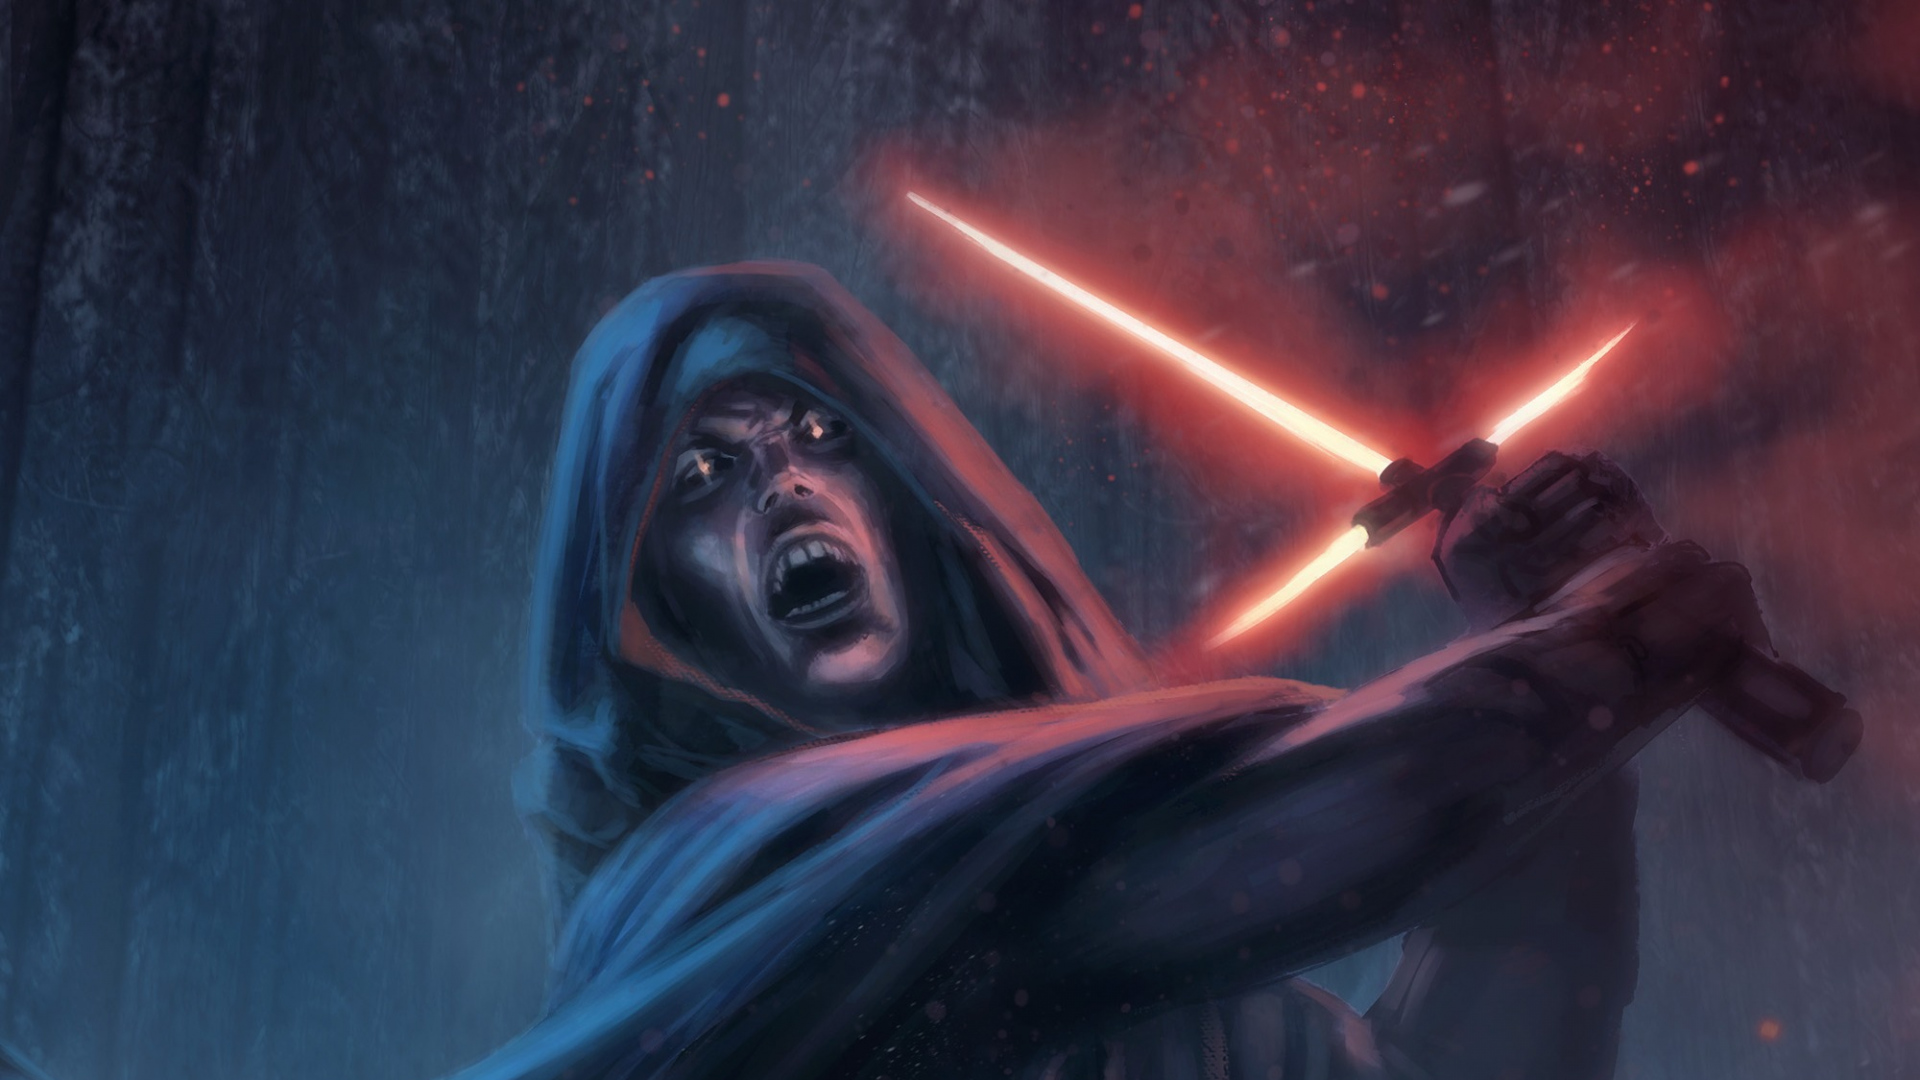 Star Wars Sith Concept Art 374063 Hd Wallpaper Backgrounds